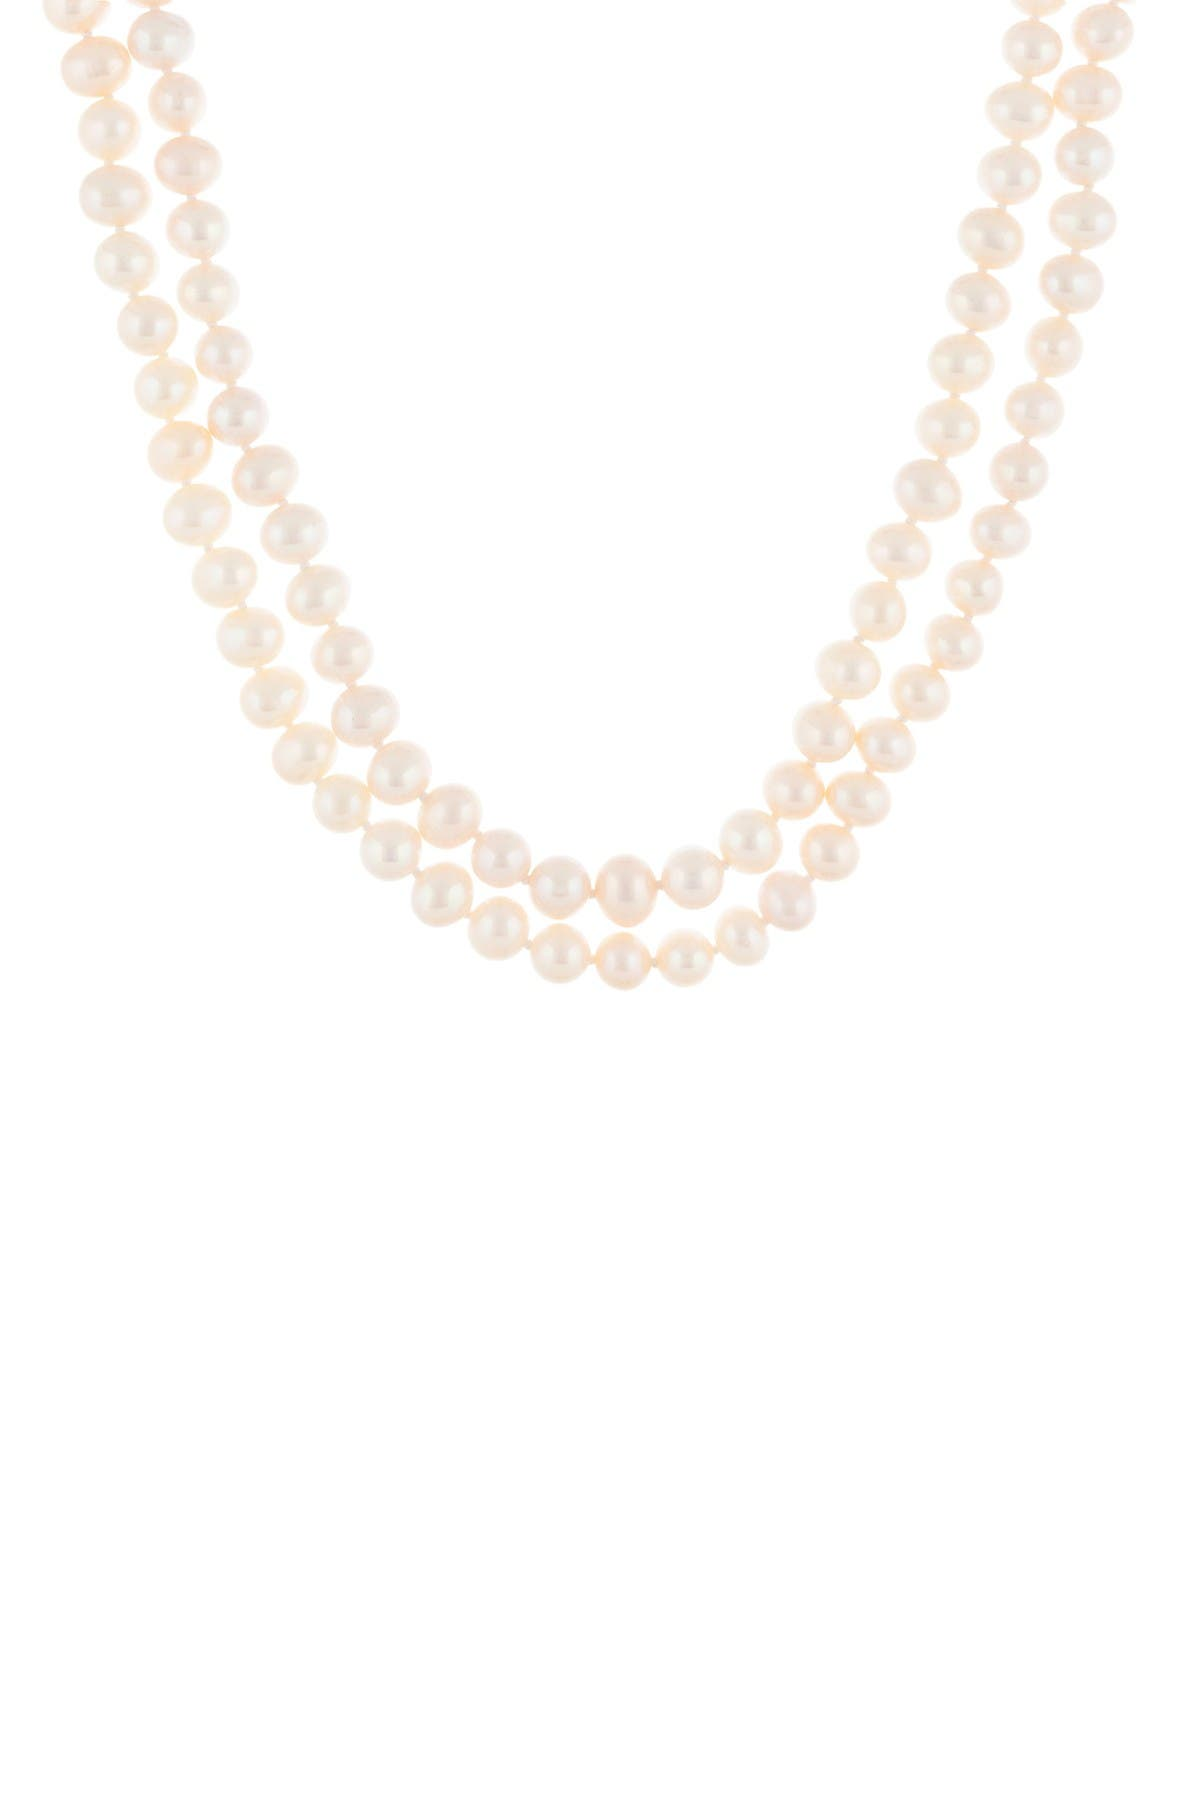 Image of Splendid Pearls 8-9mm Natural White Cultured Freshwater Pearl Infinity Necklace